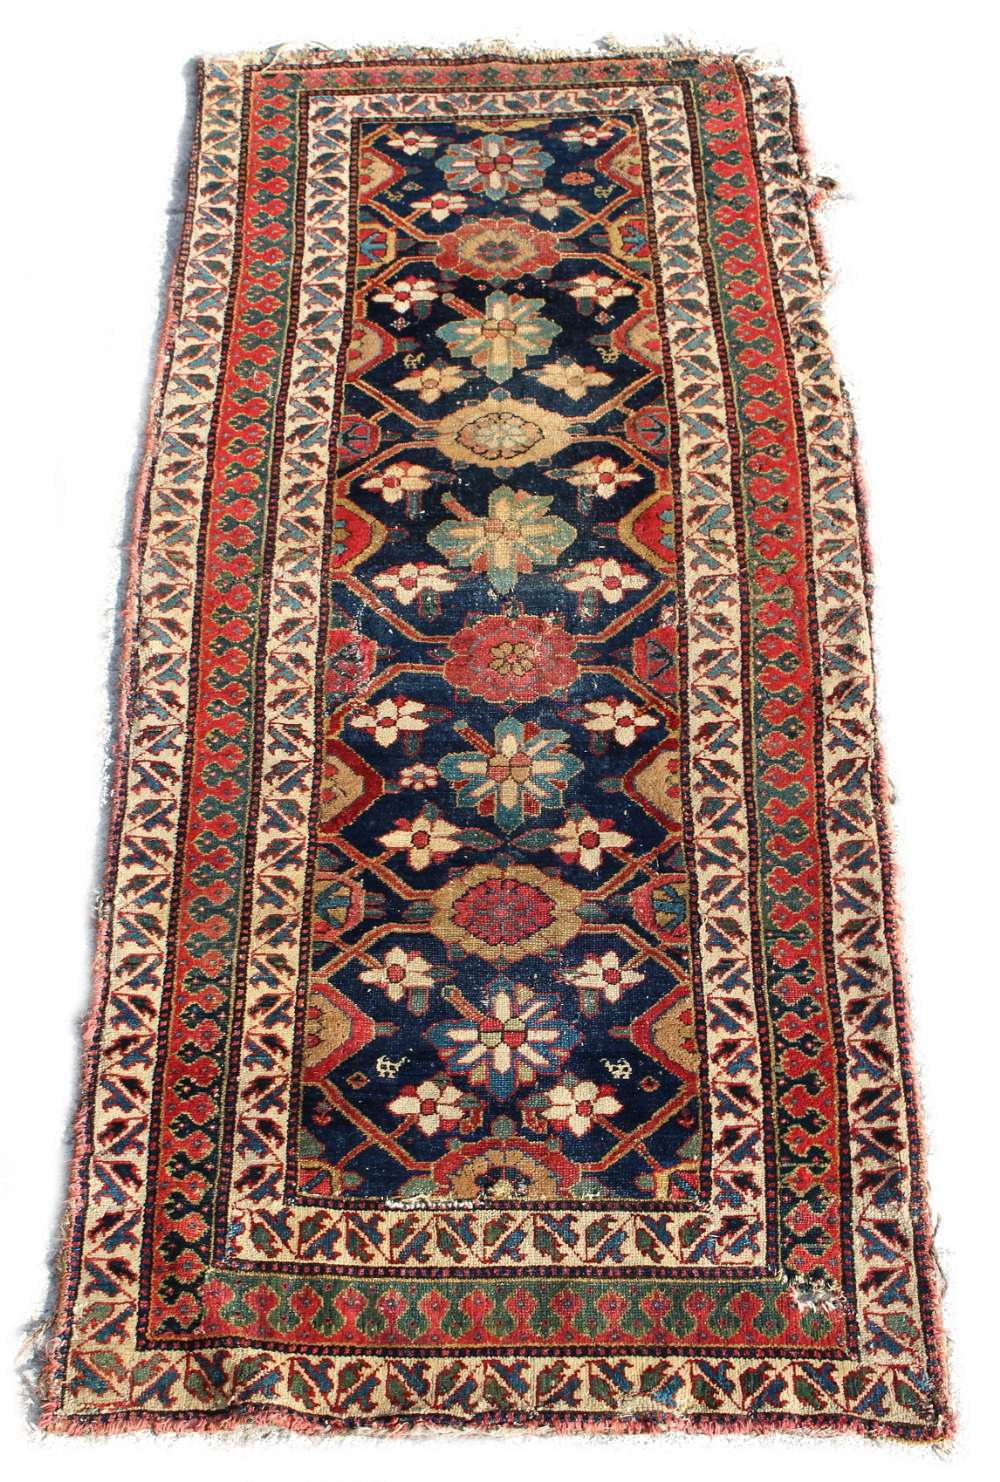 Lot 38 - Property of a gentleman - a mid 19th century Northwest Persian rug, reduced in length, damages, 84